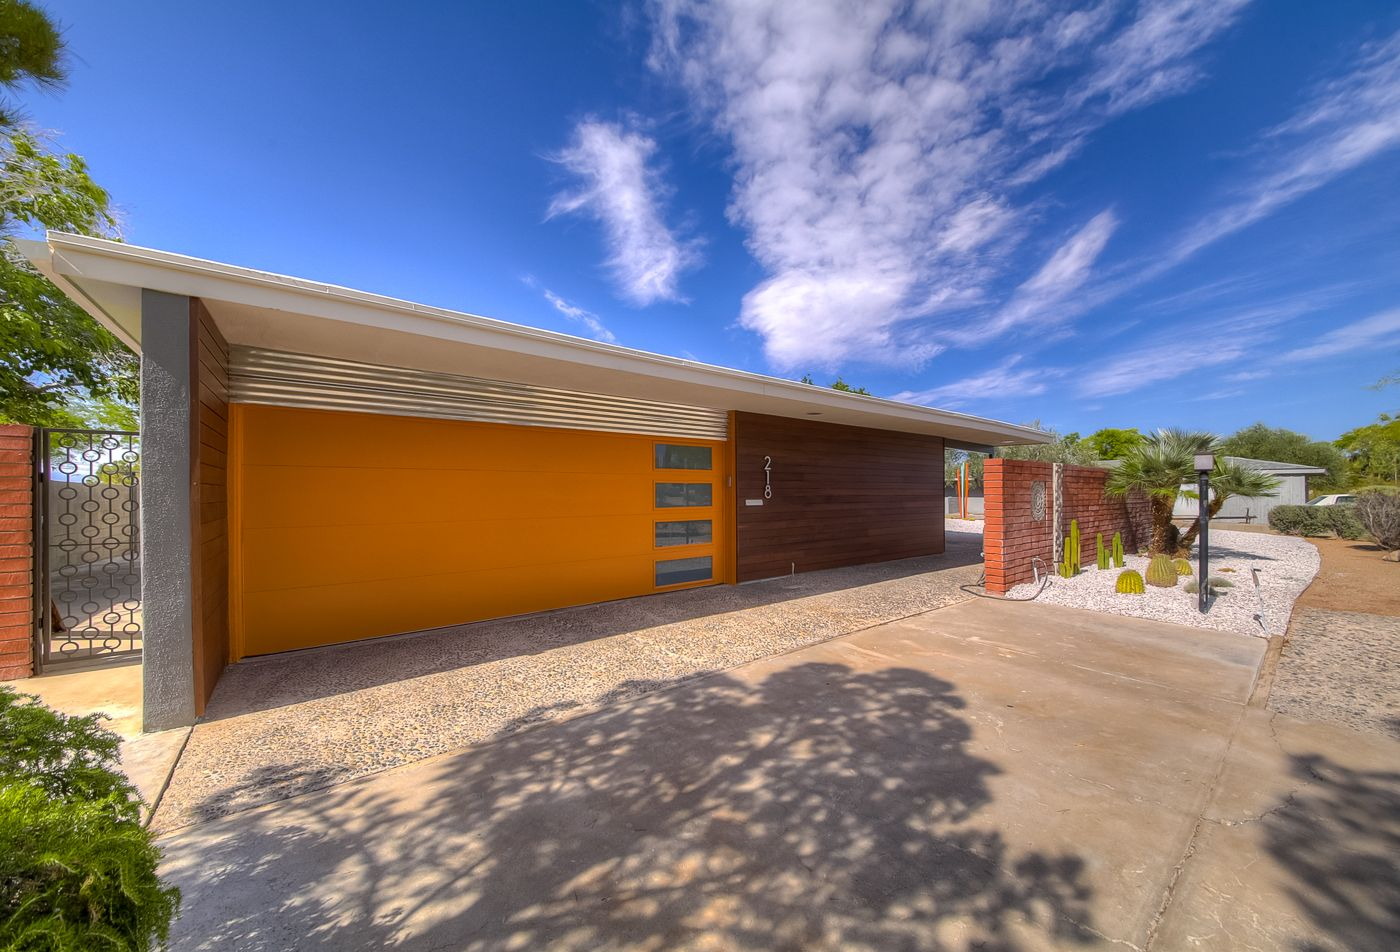 Clopay Modern Steel Collection Garage Door Painted Sw Amber Wave Adds Curb Appeal To This 1966 Mid C Garage Doors Garage Door Makeover Garage Door Installation